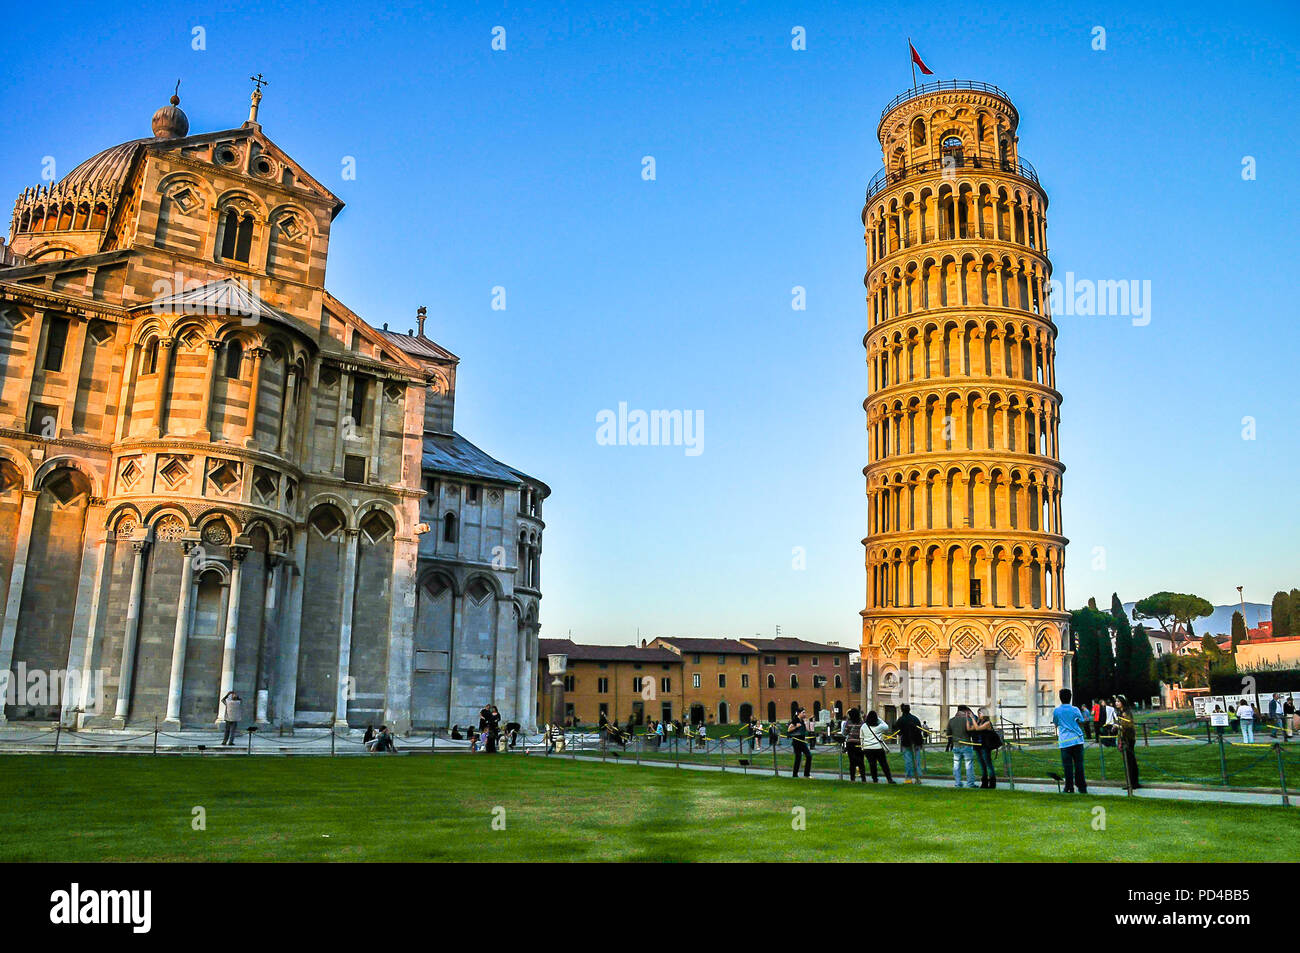 The Leaning Tower of Pisa - Stock Image